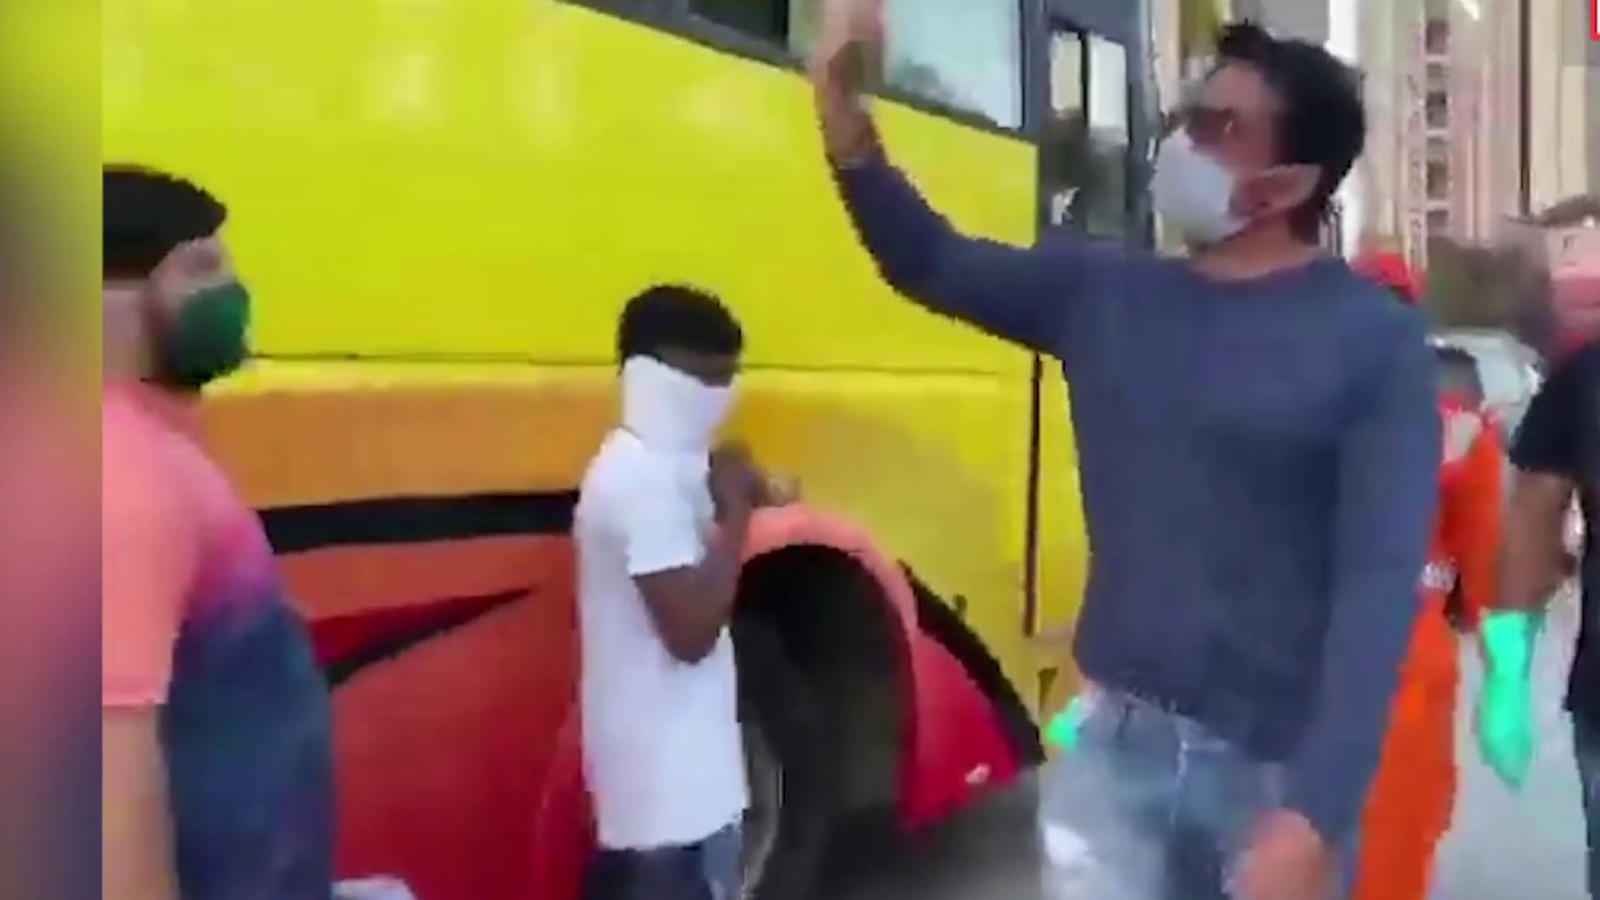 sonu-sood-asks-migrants-to-wear-masks-and-return-safely-as-he-arranges-more-buses-for-them